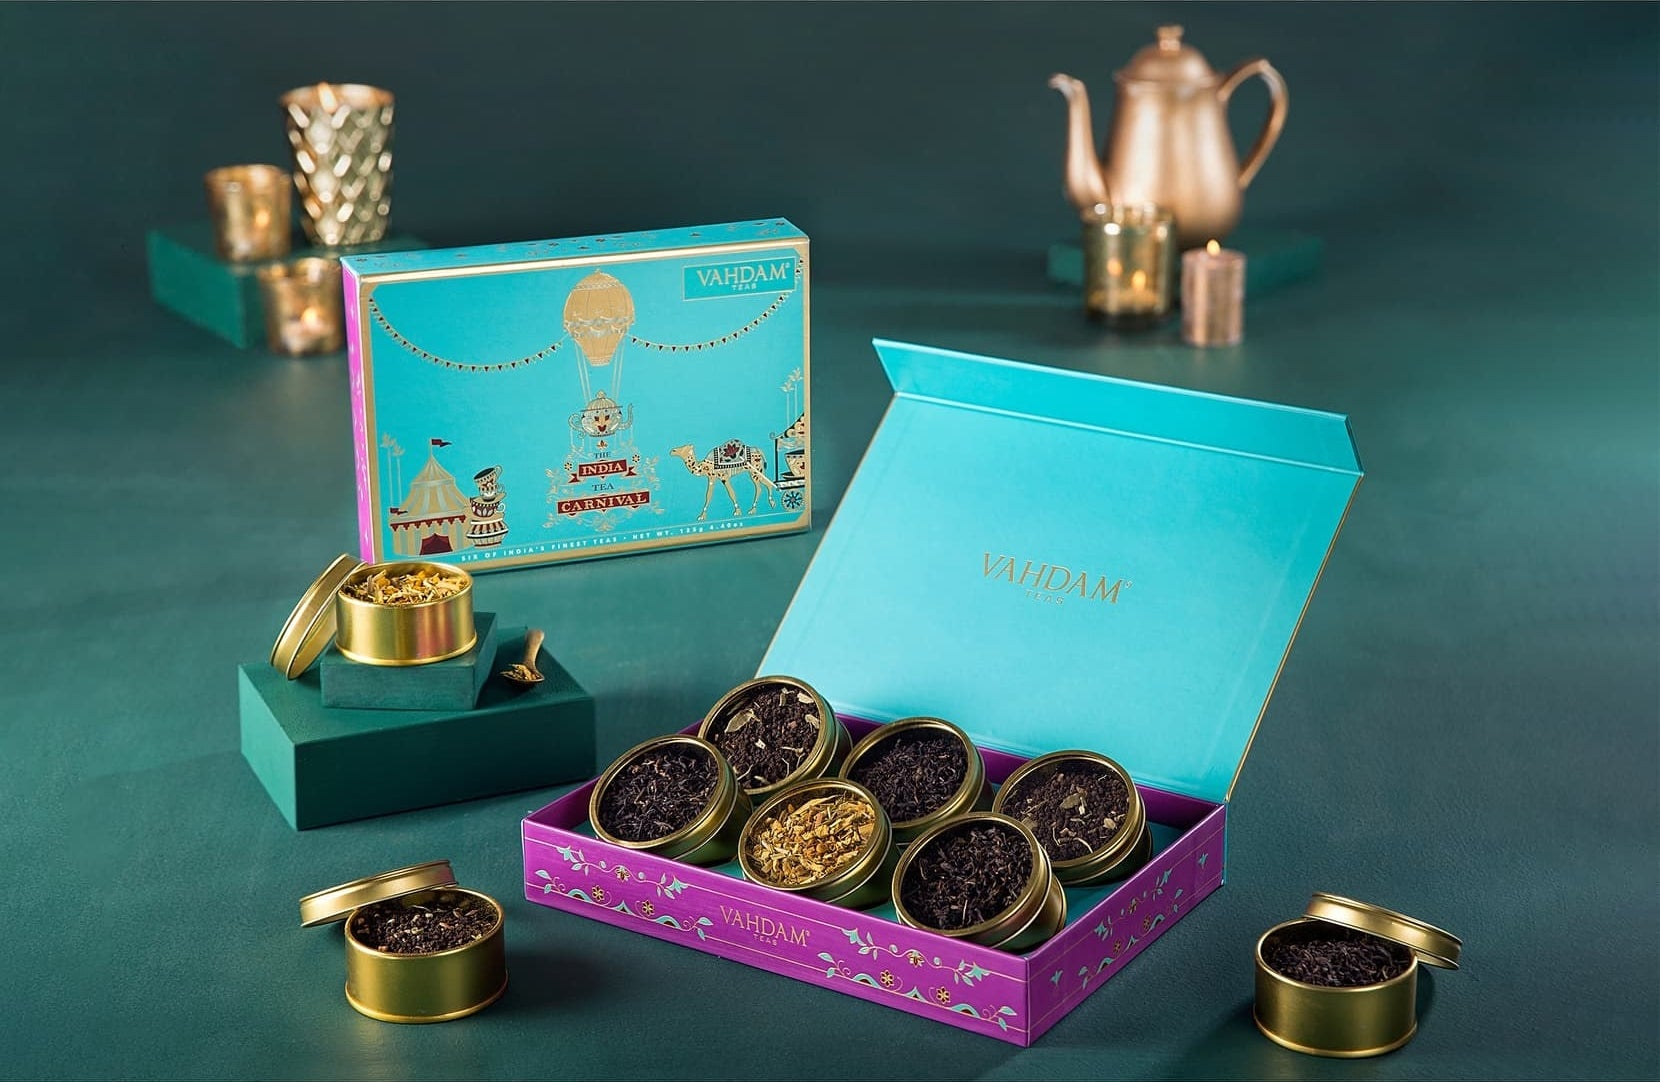 The teas packed in round tins, packaged in an ornate box